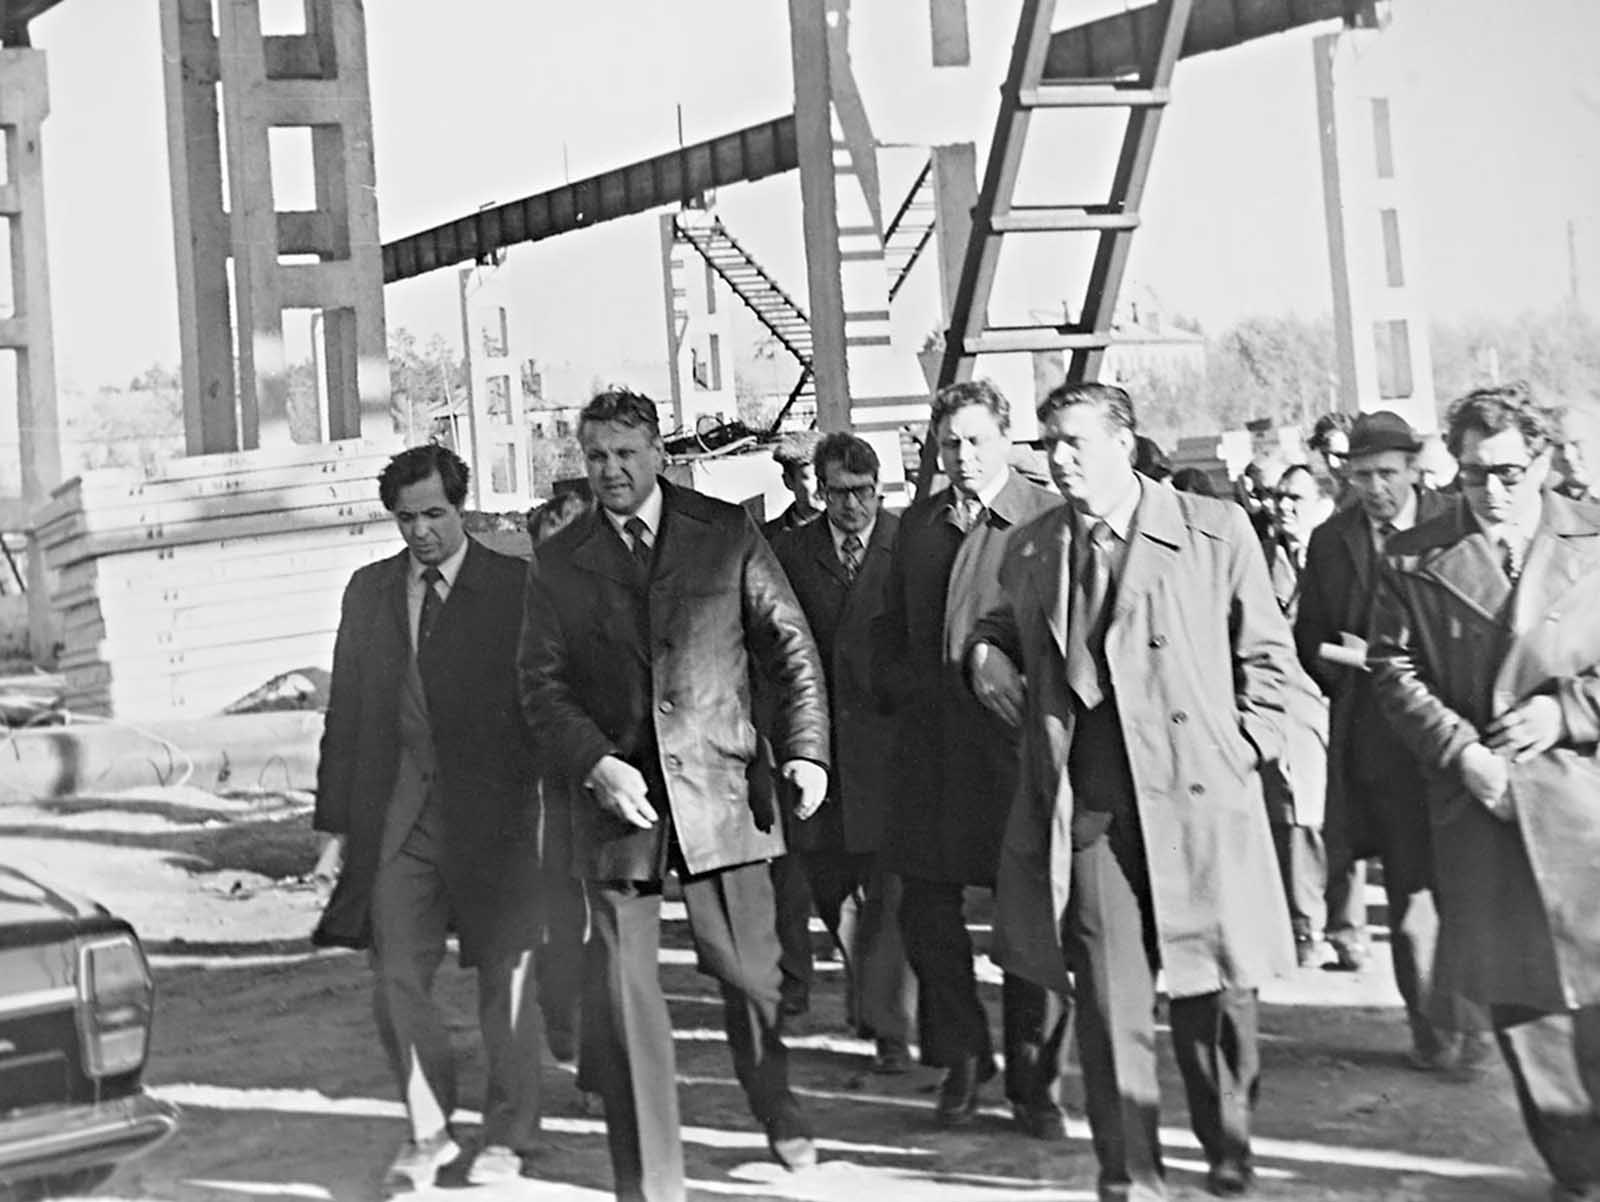 Yeltsin, the first secretary of Yekaterinburg communist party committee, paying a visit to a construction site in 1980.